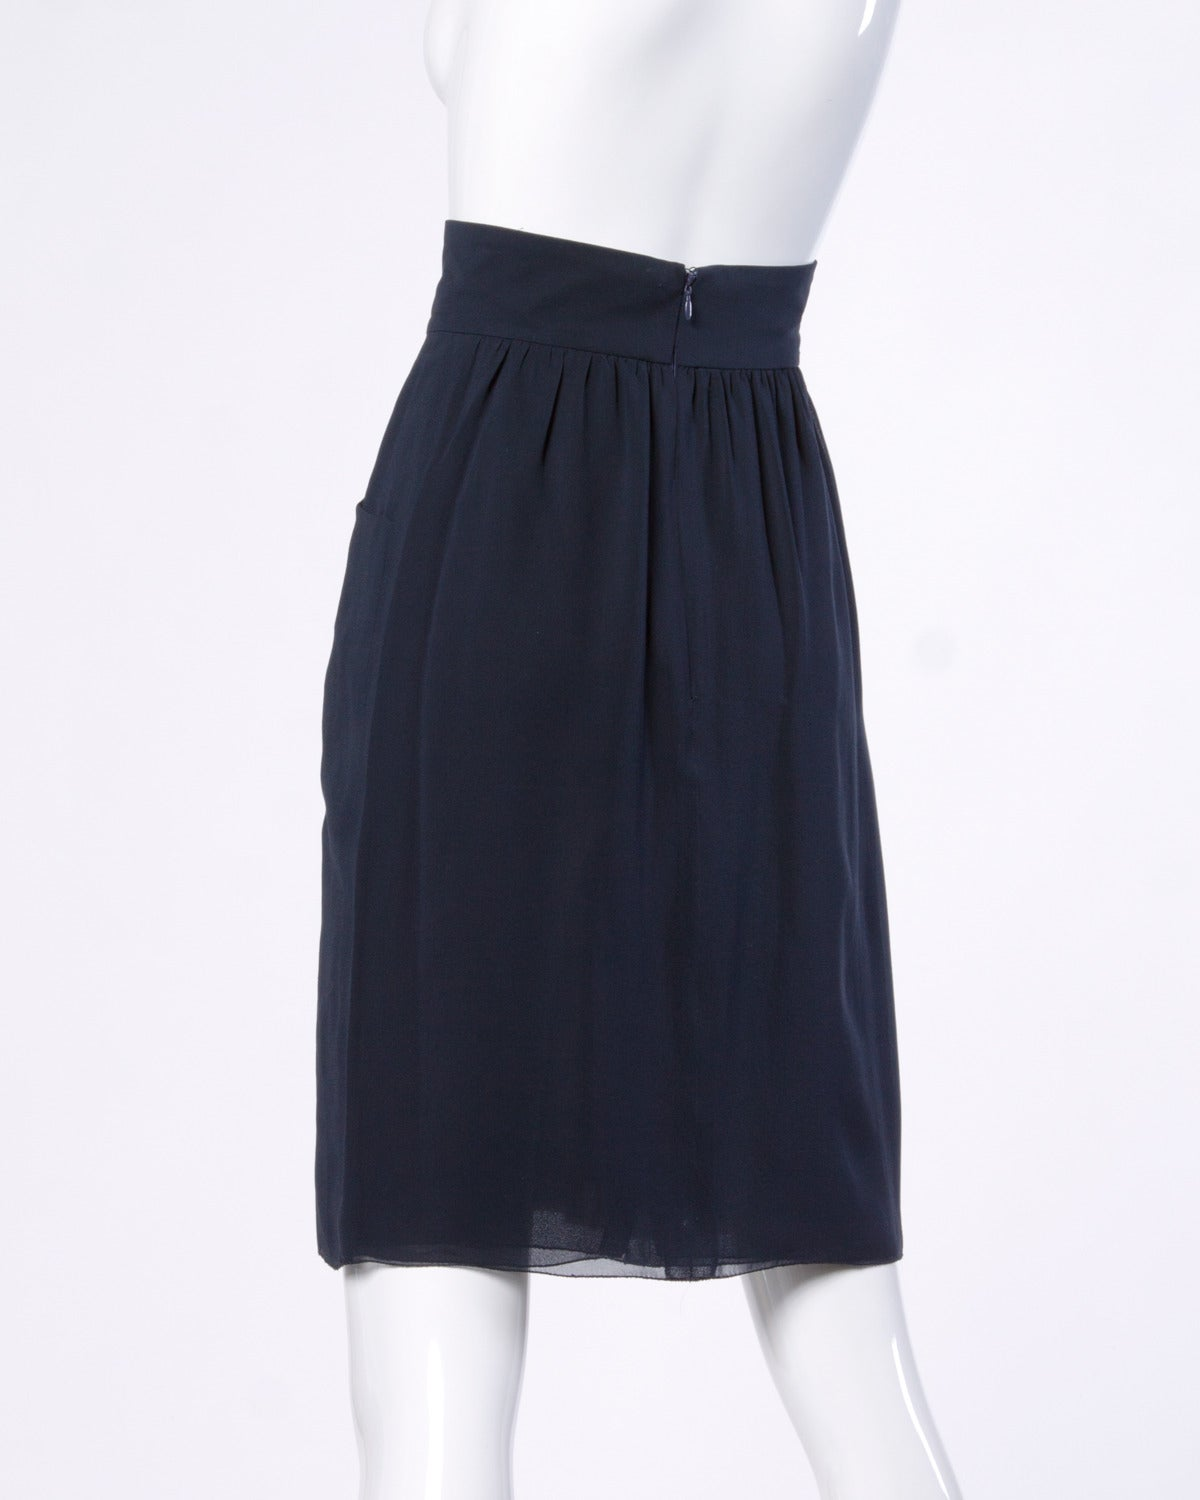 Chanel Vintage Navy Blue Pleated Silk Chiffon Skirt 6